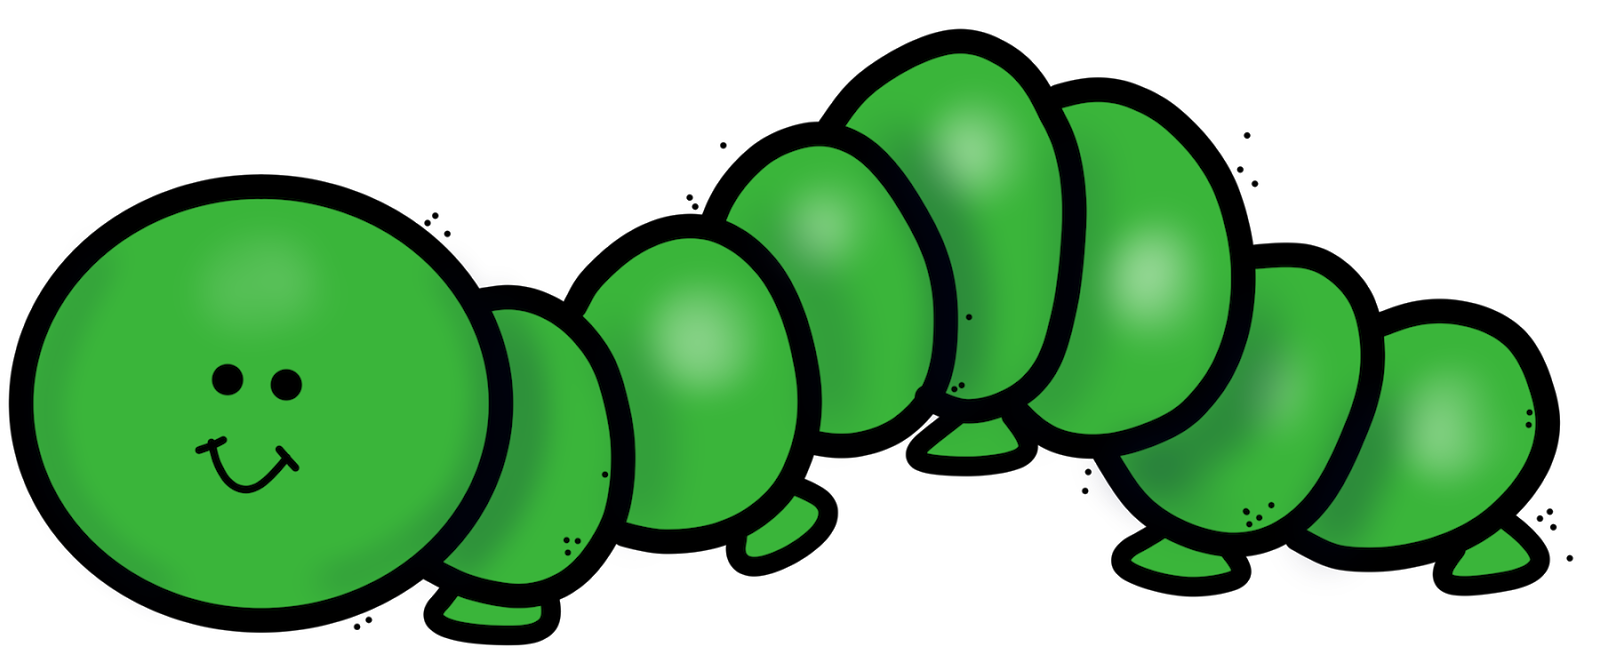 clip freeuse Inchworm clipart. Clip art free on.